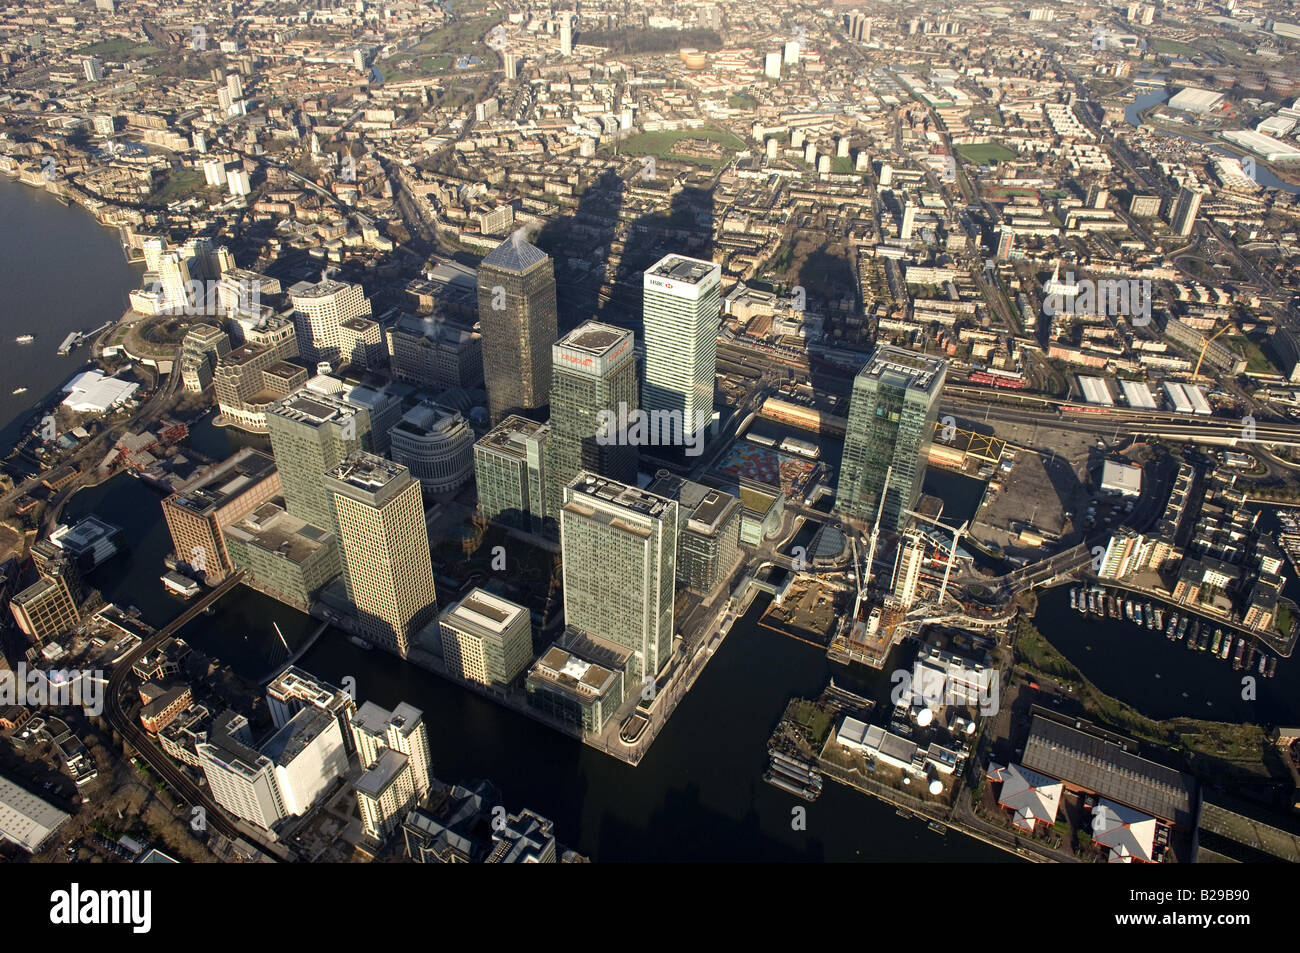 Canary Wharf Date 12 03 2008 Ref ZB648 111149 0014 COMPULSORY CREDIT World Pictures Photoshot - Stock Image